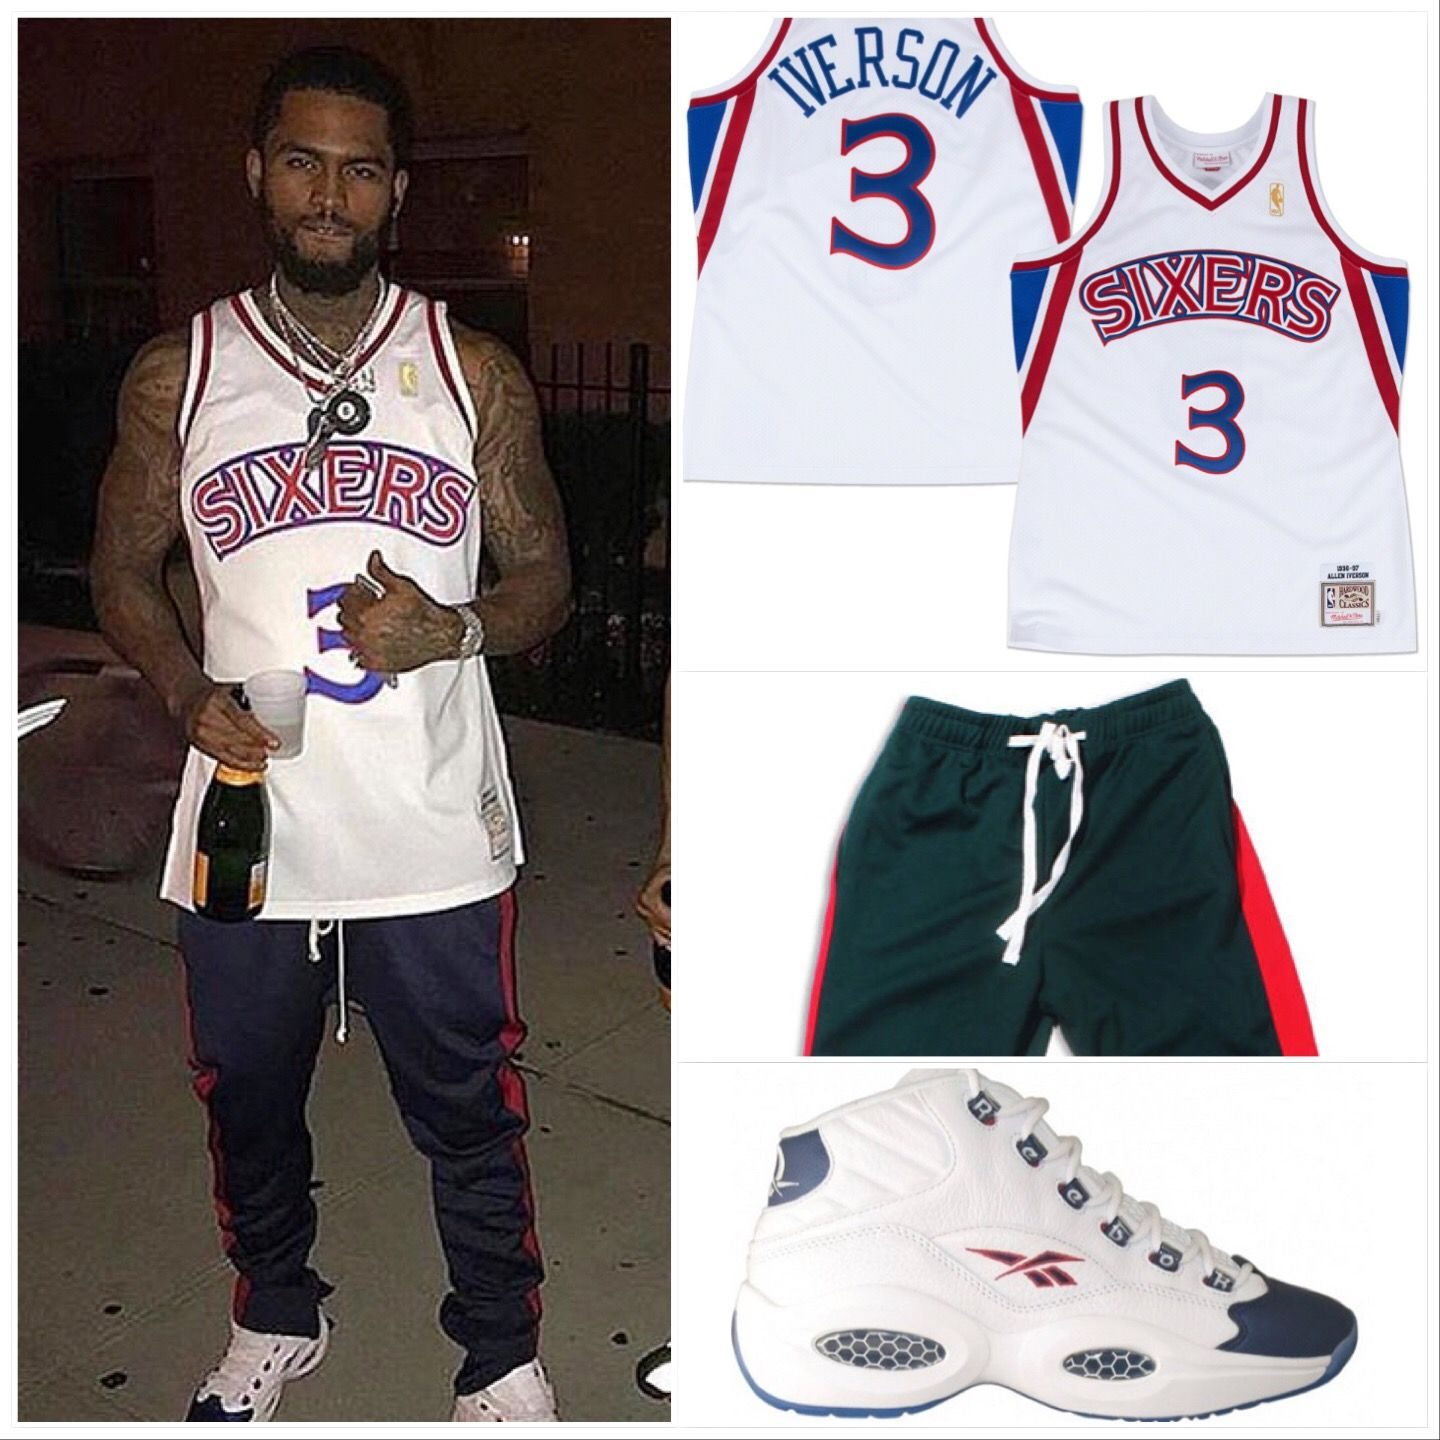 quality design dbc52 7063f The Rapper In Allen Iverson NBA Jersey Sneakers and Reebok ...